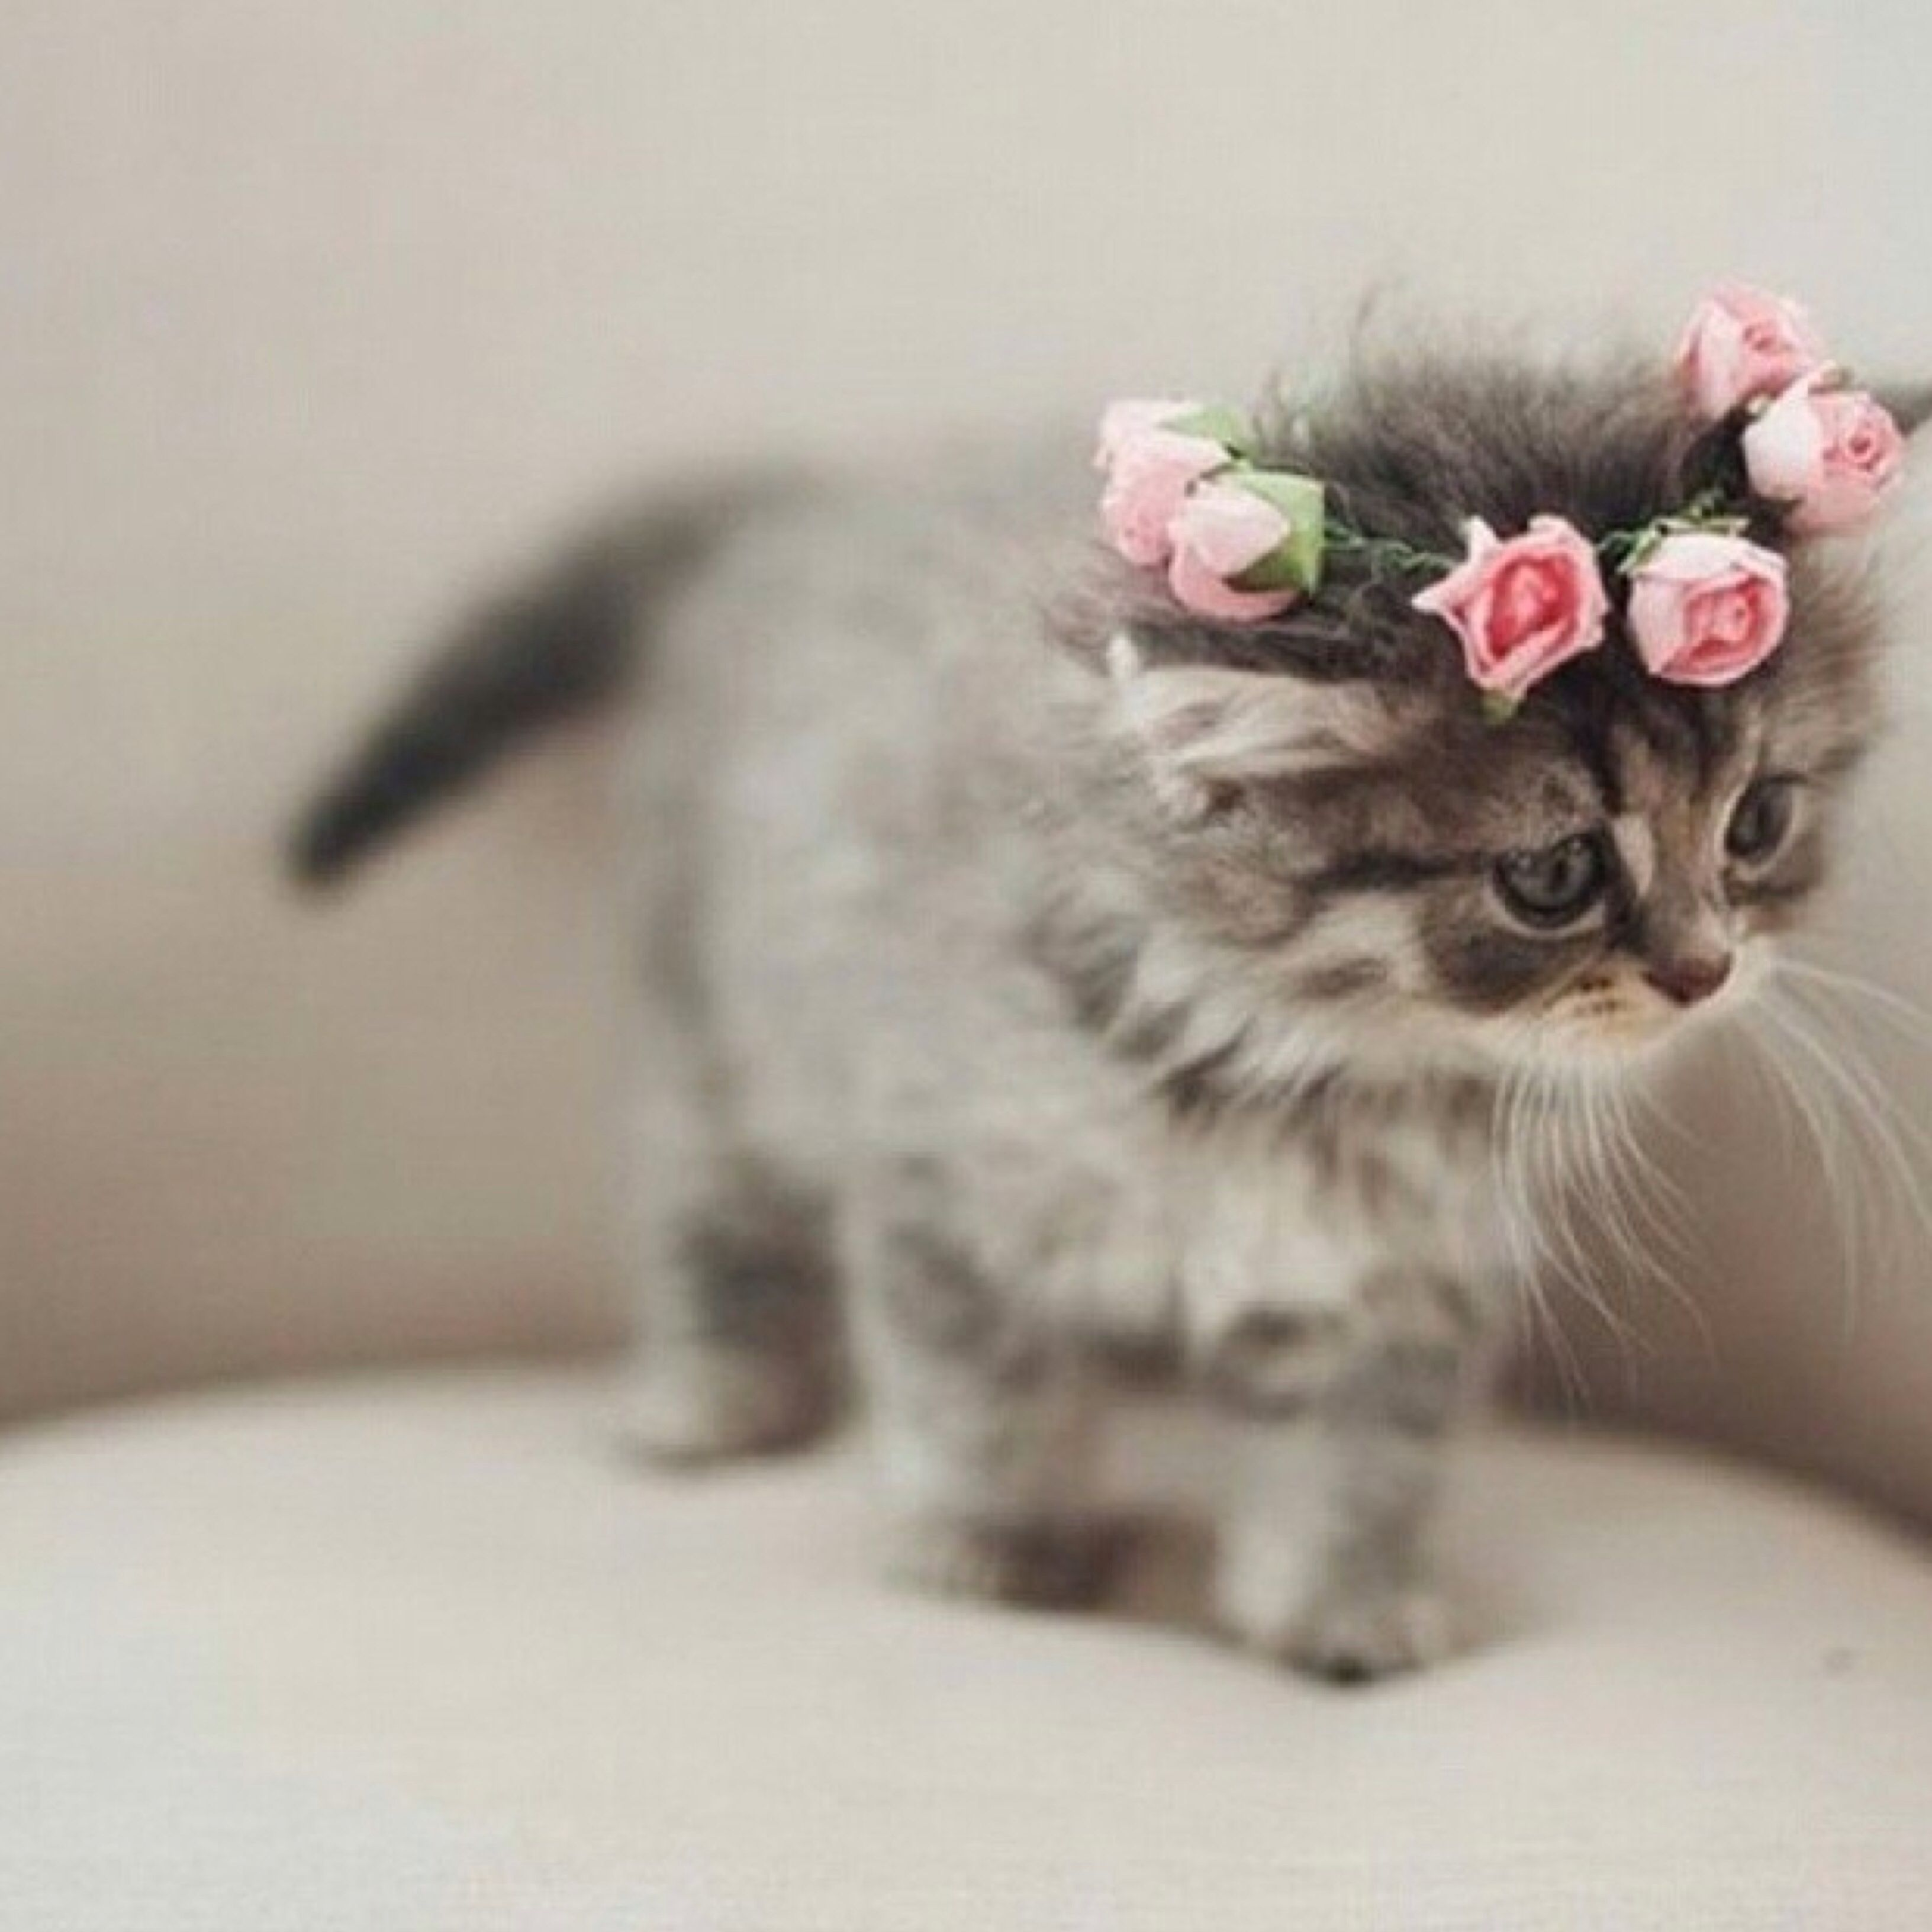 You Can Look As Cute As This One In One Of Our Flower Crowns In Store And Online Cute Animals Kittens Cutest Cute Cats